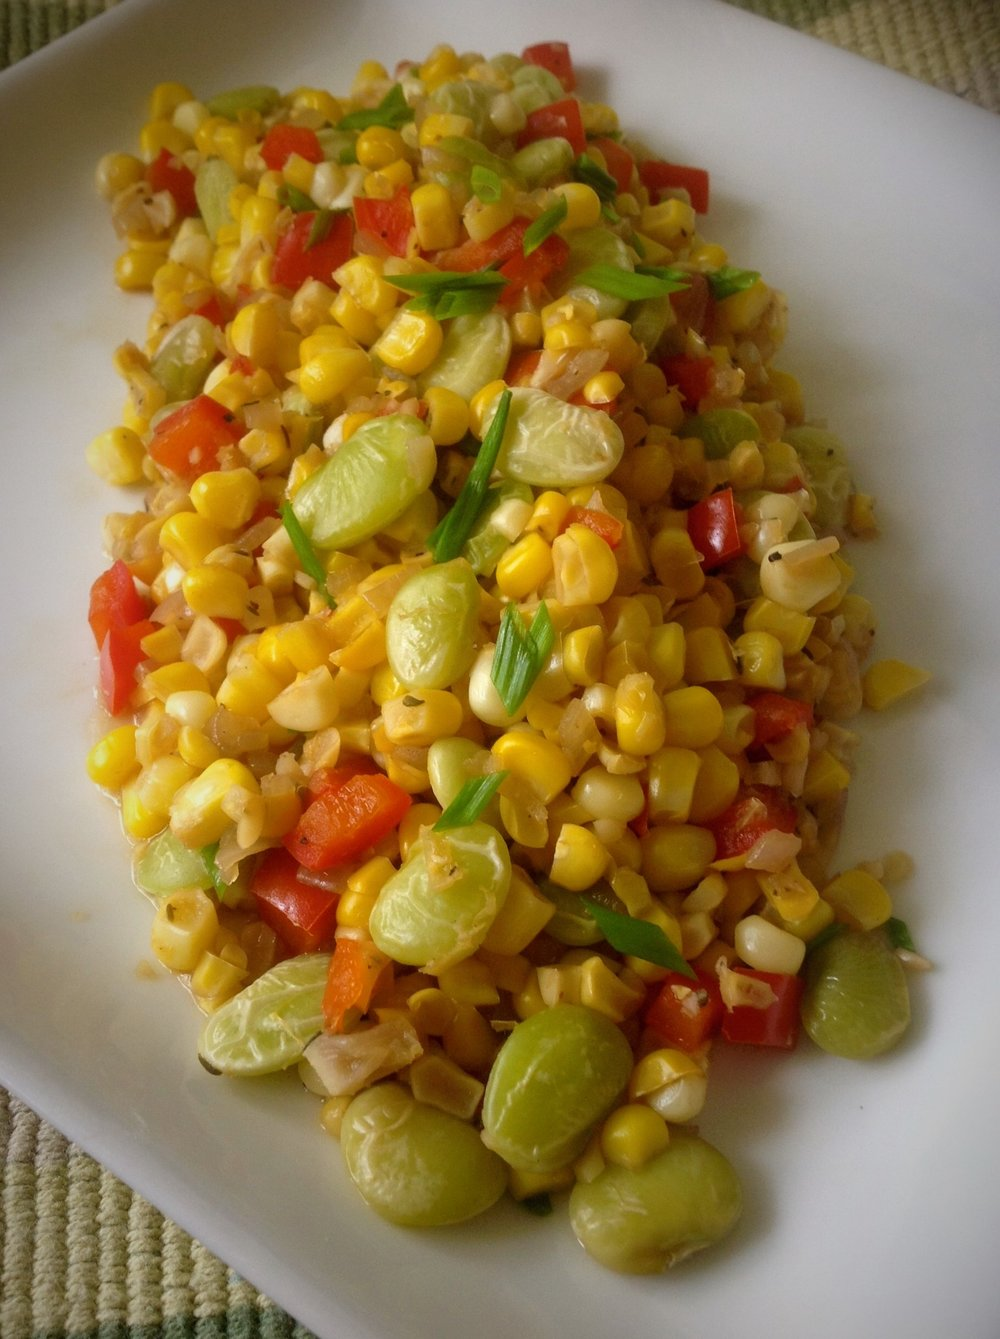 Sweet Summer Corn Succotash - Healthy, Gluten-Free, Oil-Free, Plant-Based, Vegan